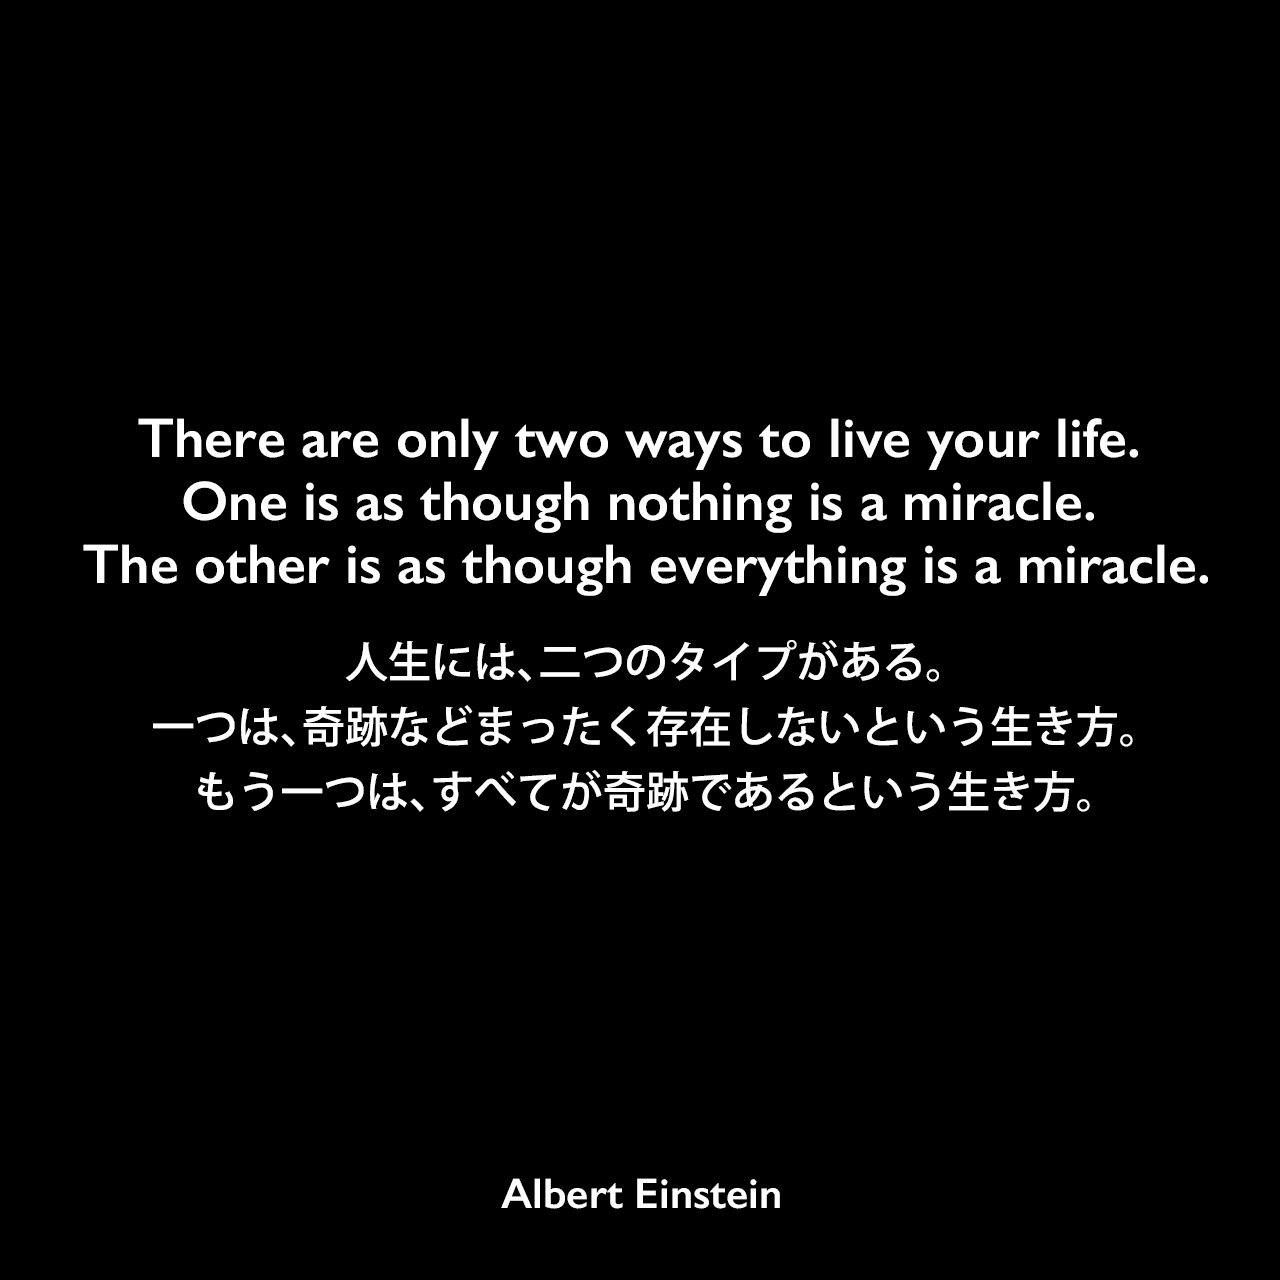 There are only two ways to live your life. One is as though nothing is a miracle. The other is as though everything is a miracle.人生には、二つのタイプがある。一つは、奇跡などまったく存在しないという生き方。もう一つは、すべてが奇跡であるという生き方。